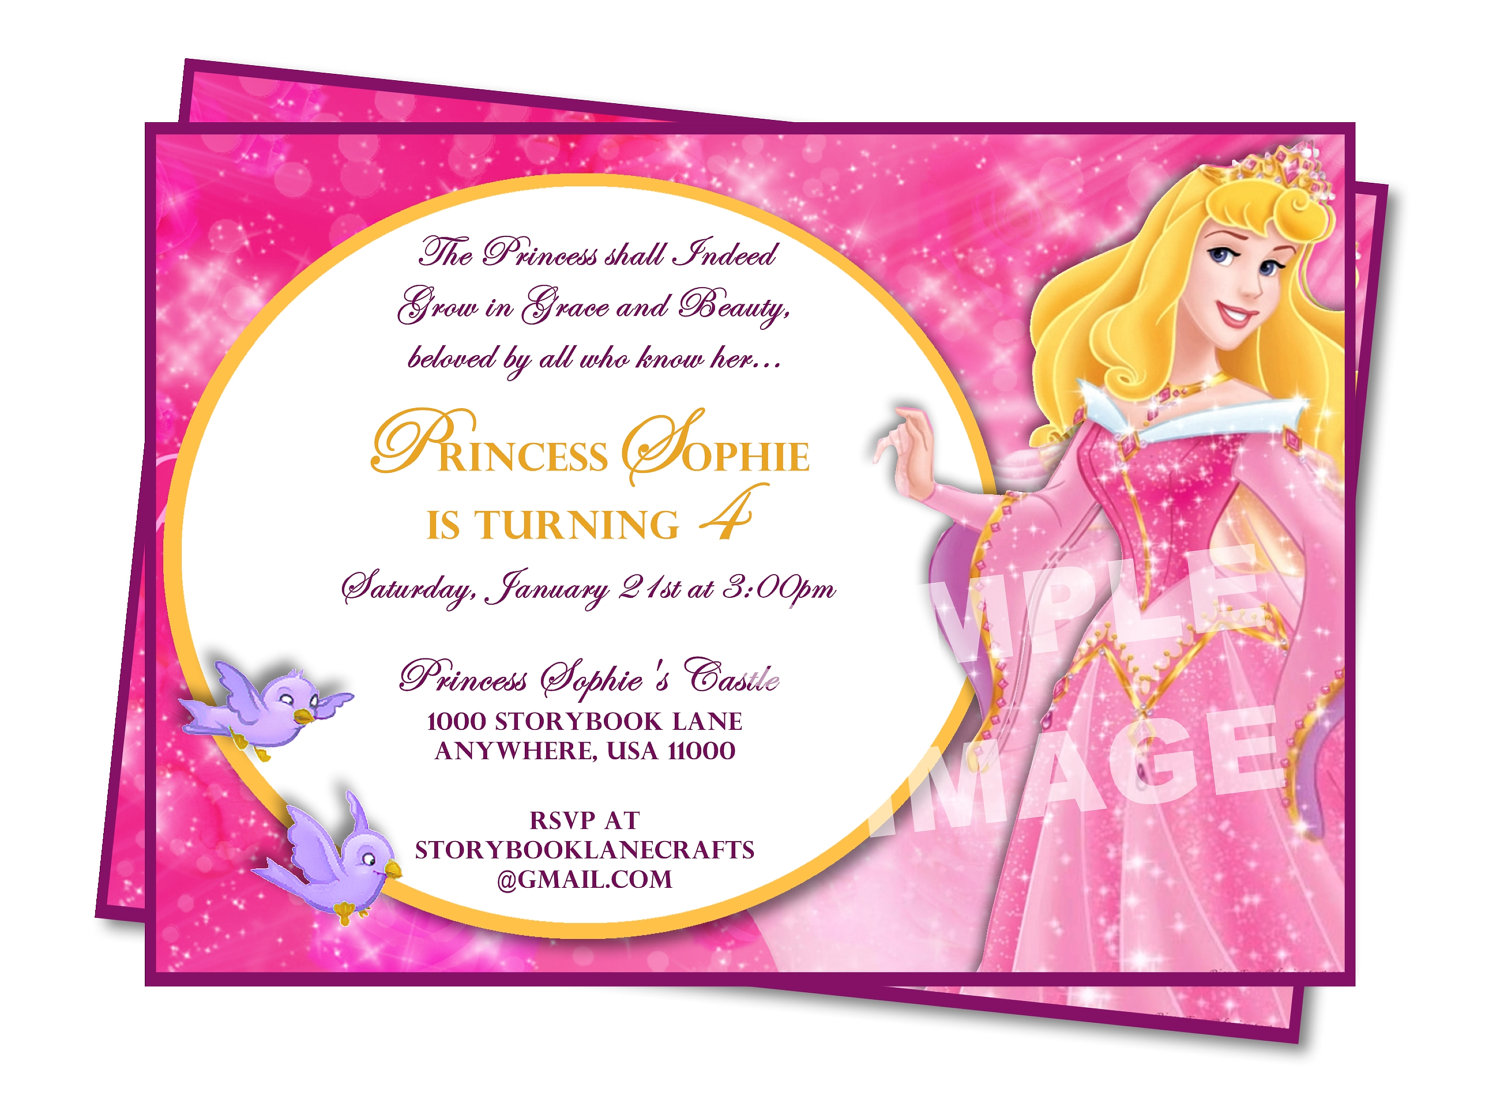 7th birthday party invitation wording ; Exciting-Birthday-Party-Invitation-Wording-Which-You-Need-To-Make-Birthday-Party-Invitation-Template